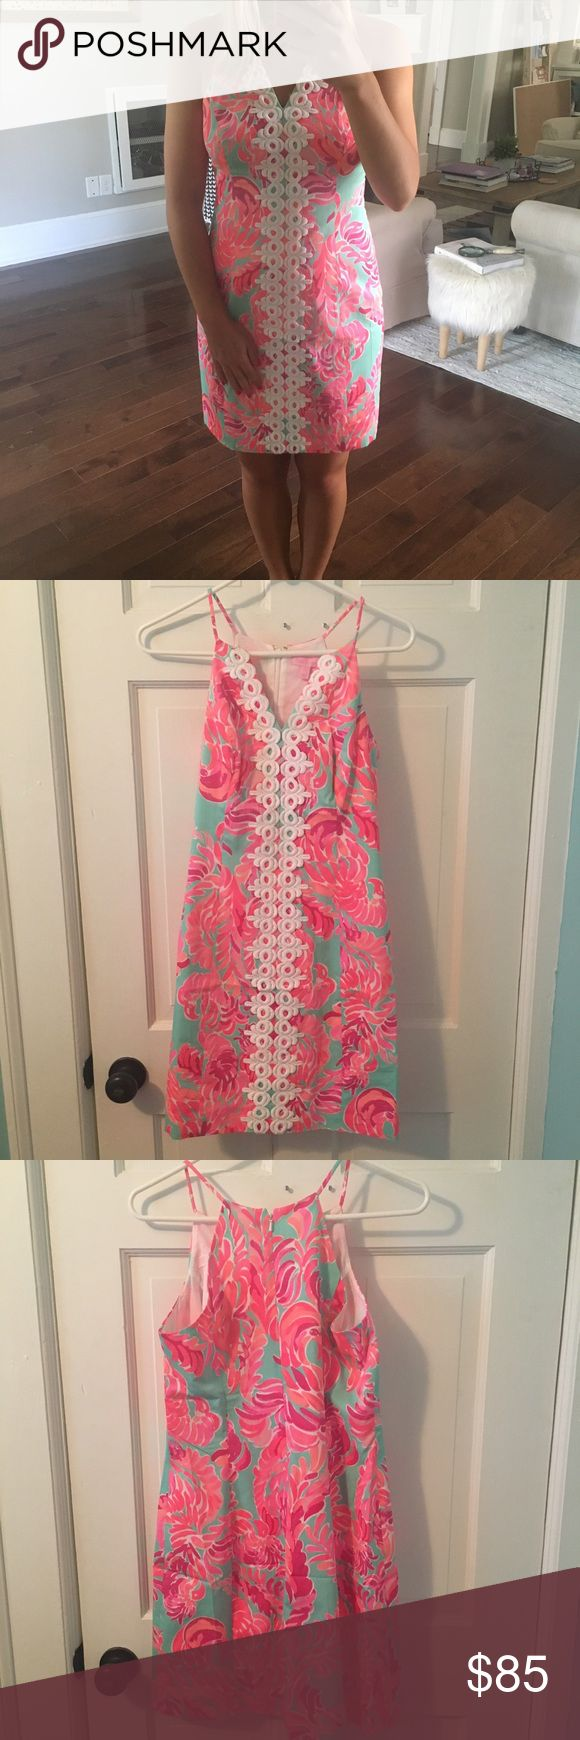 Lilly Pulitzer dress Gorgeous printed pink and blue Lilly Pulitzer dress size 4. Never worn and new with tags!! Lilly Pulitzer Dresses